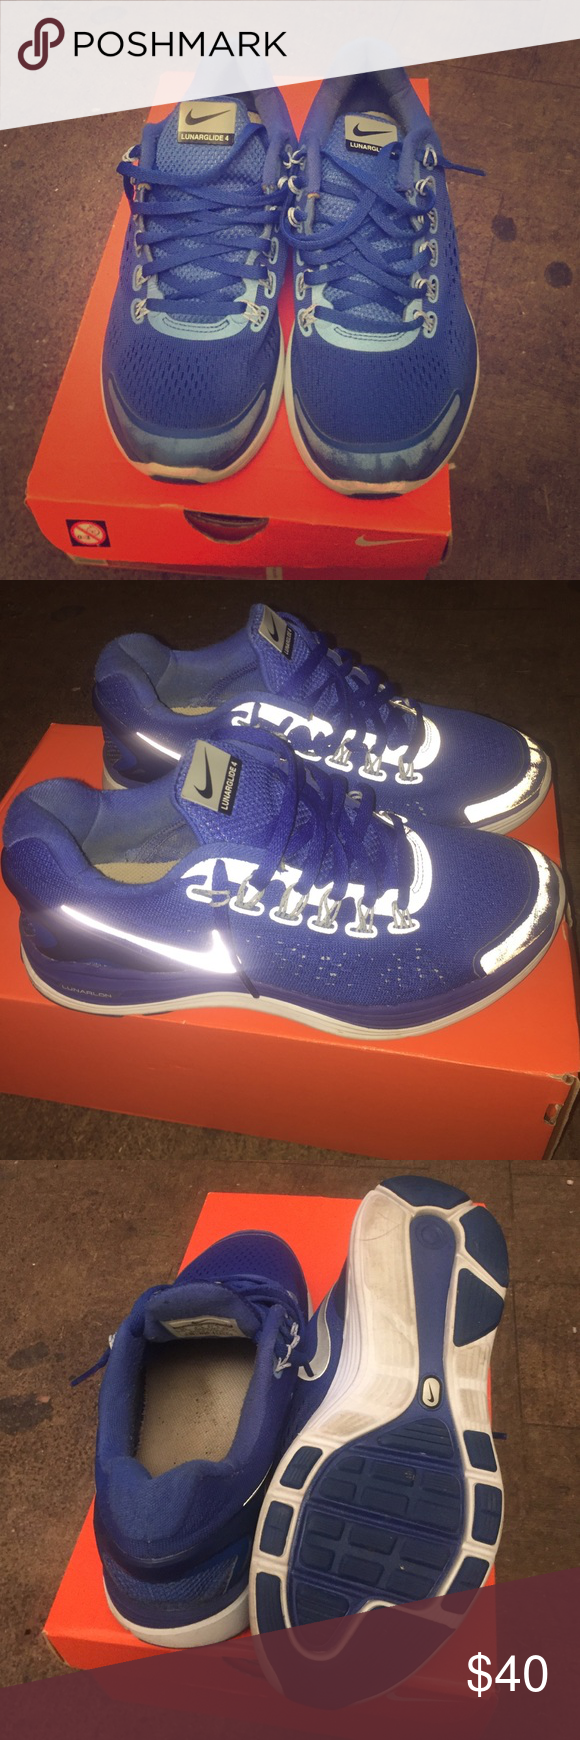 info for 18632 41036 where to buy nike lunarglide 6 runners toenail images 5a833 ...